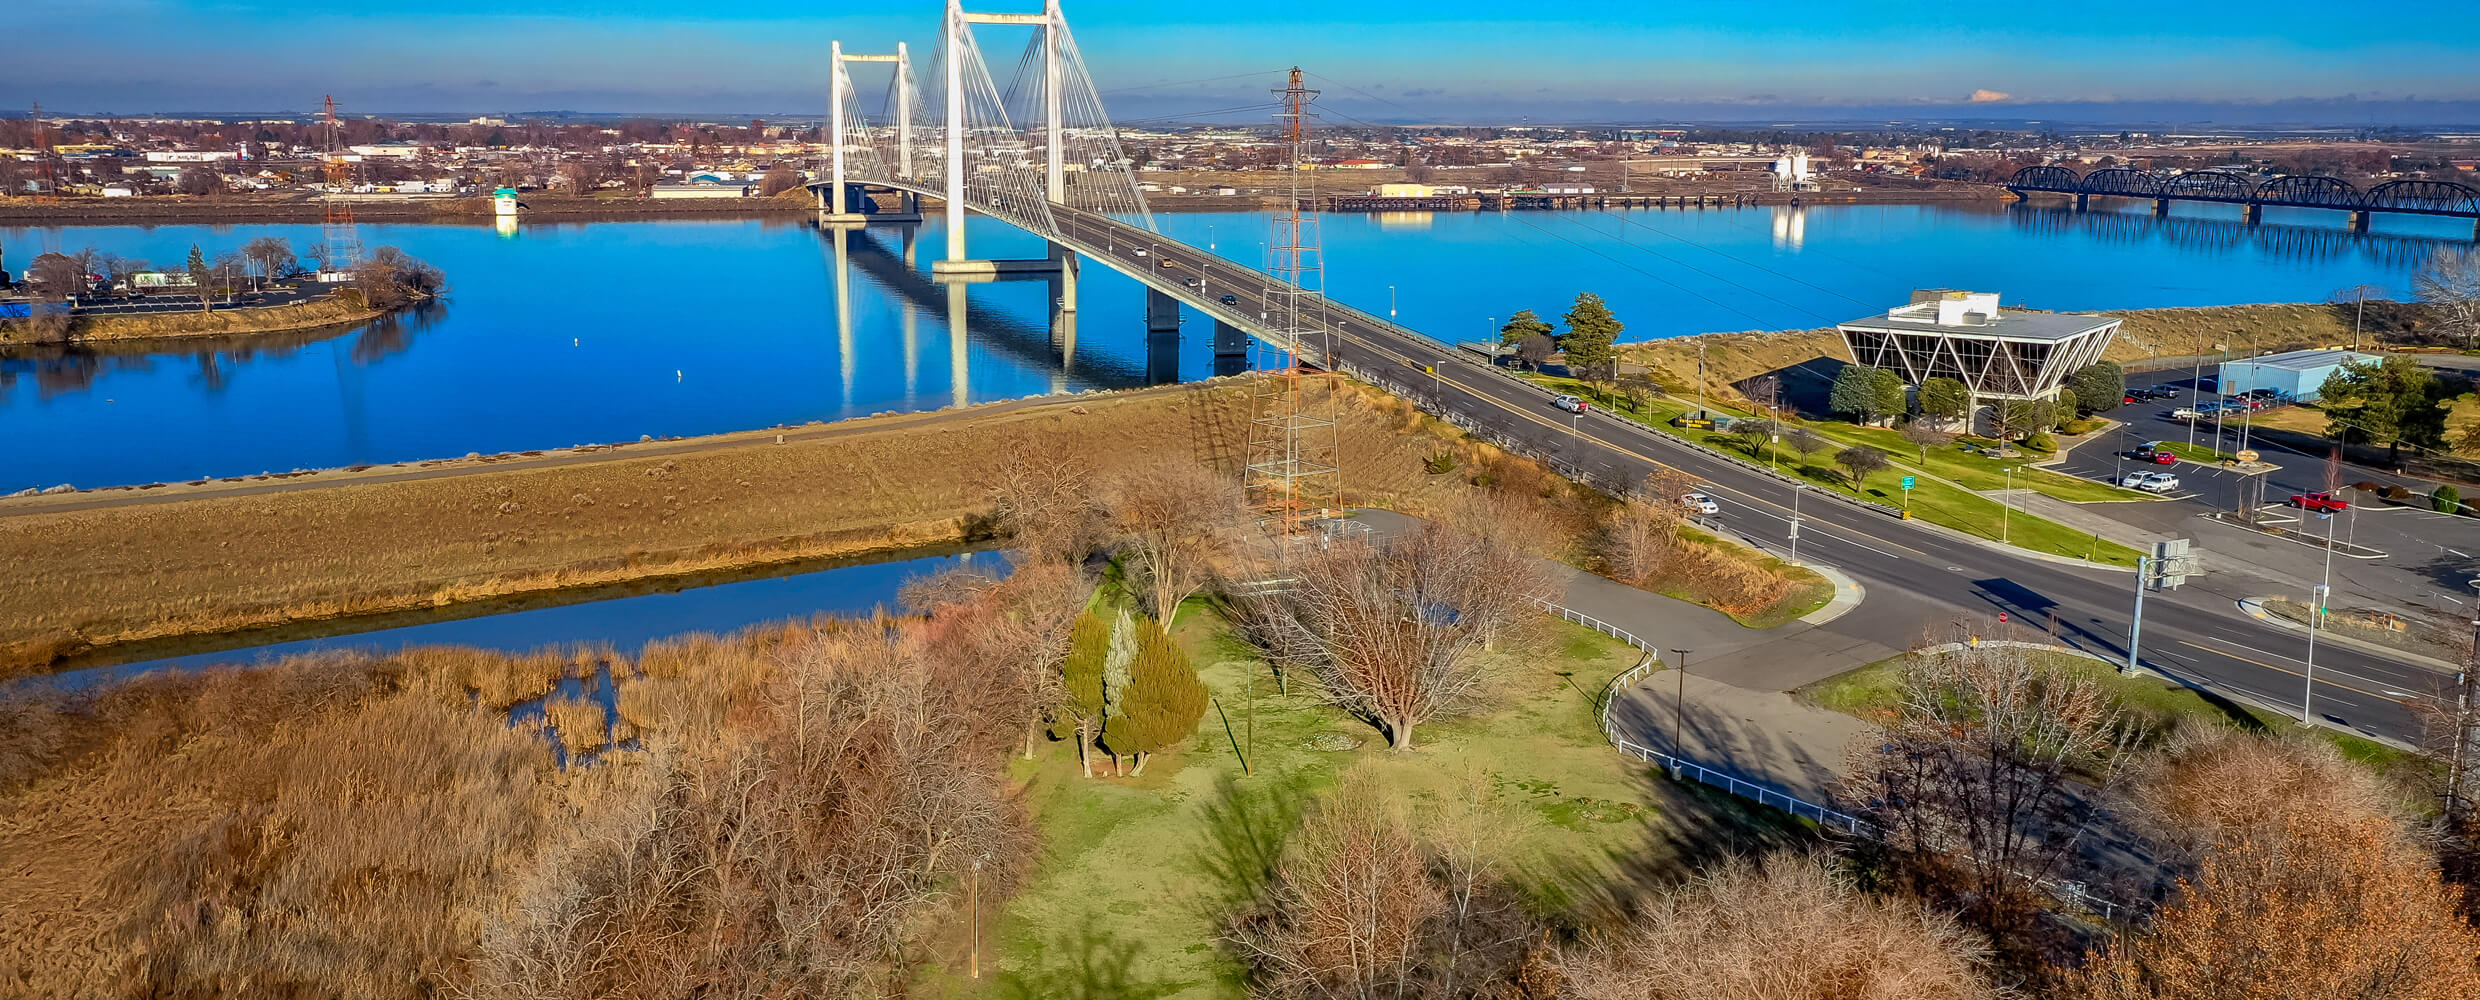 Aerial of Cable Greens site with Ed Hendler Bridge.